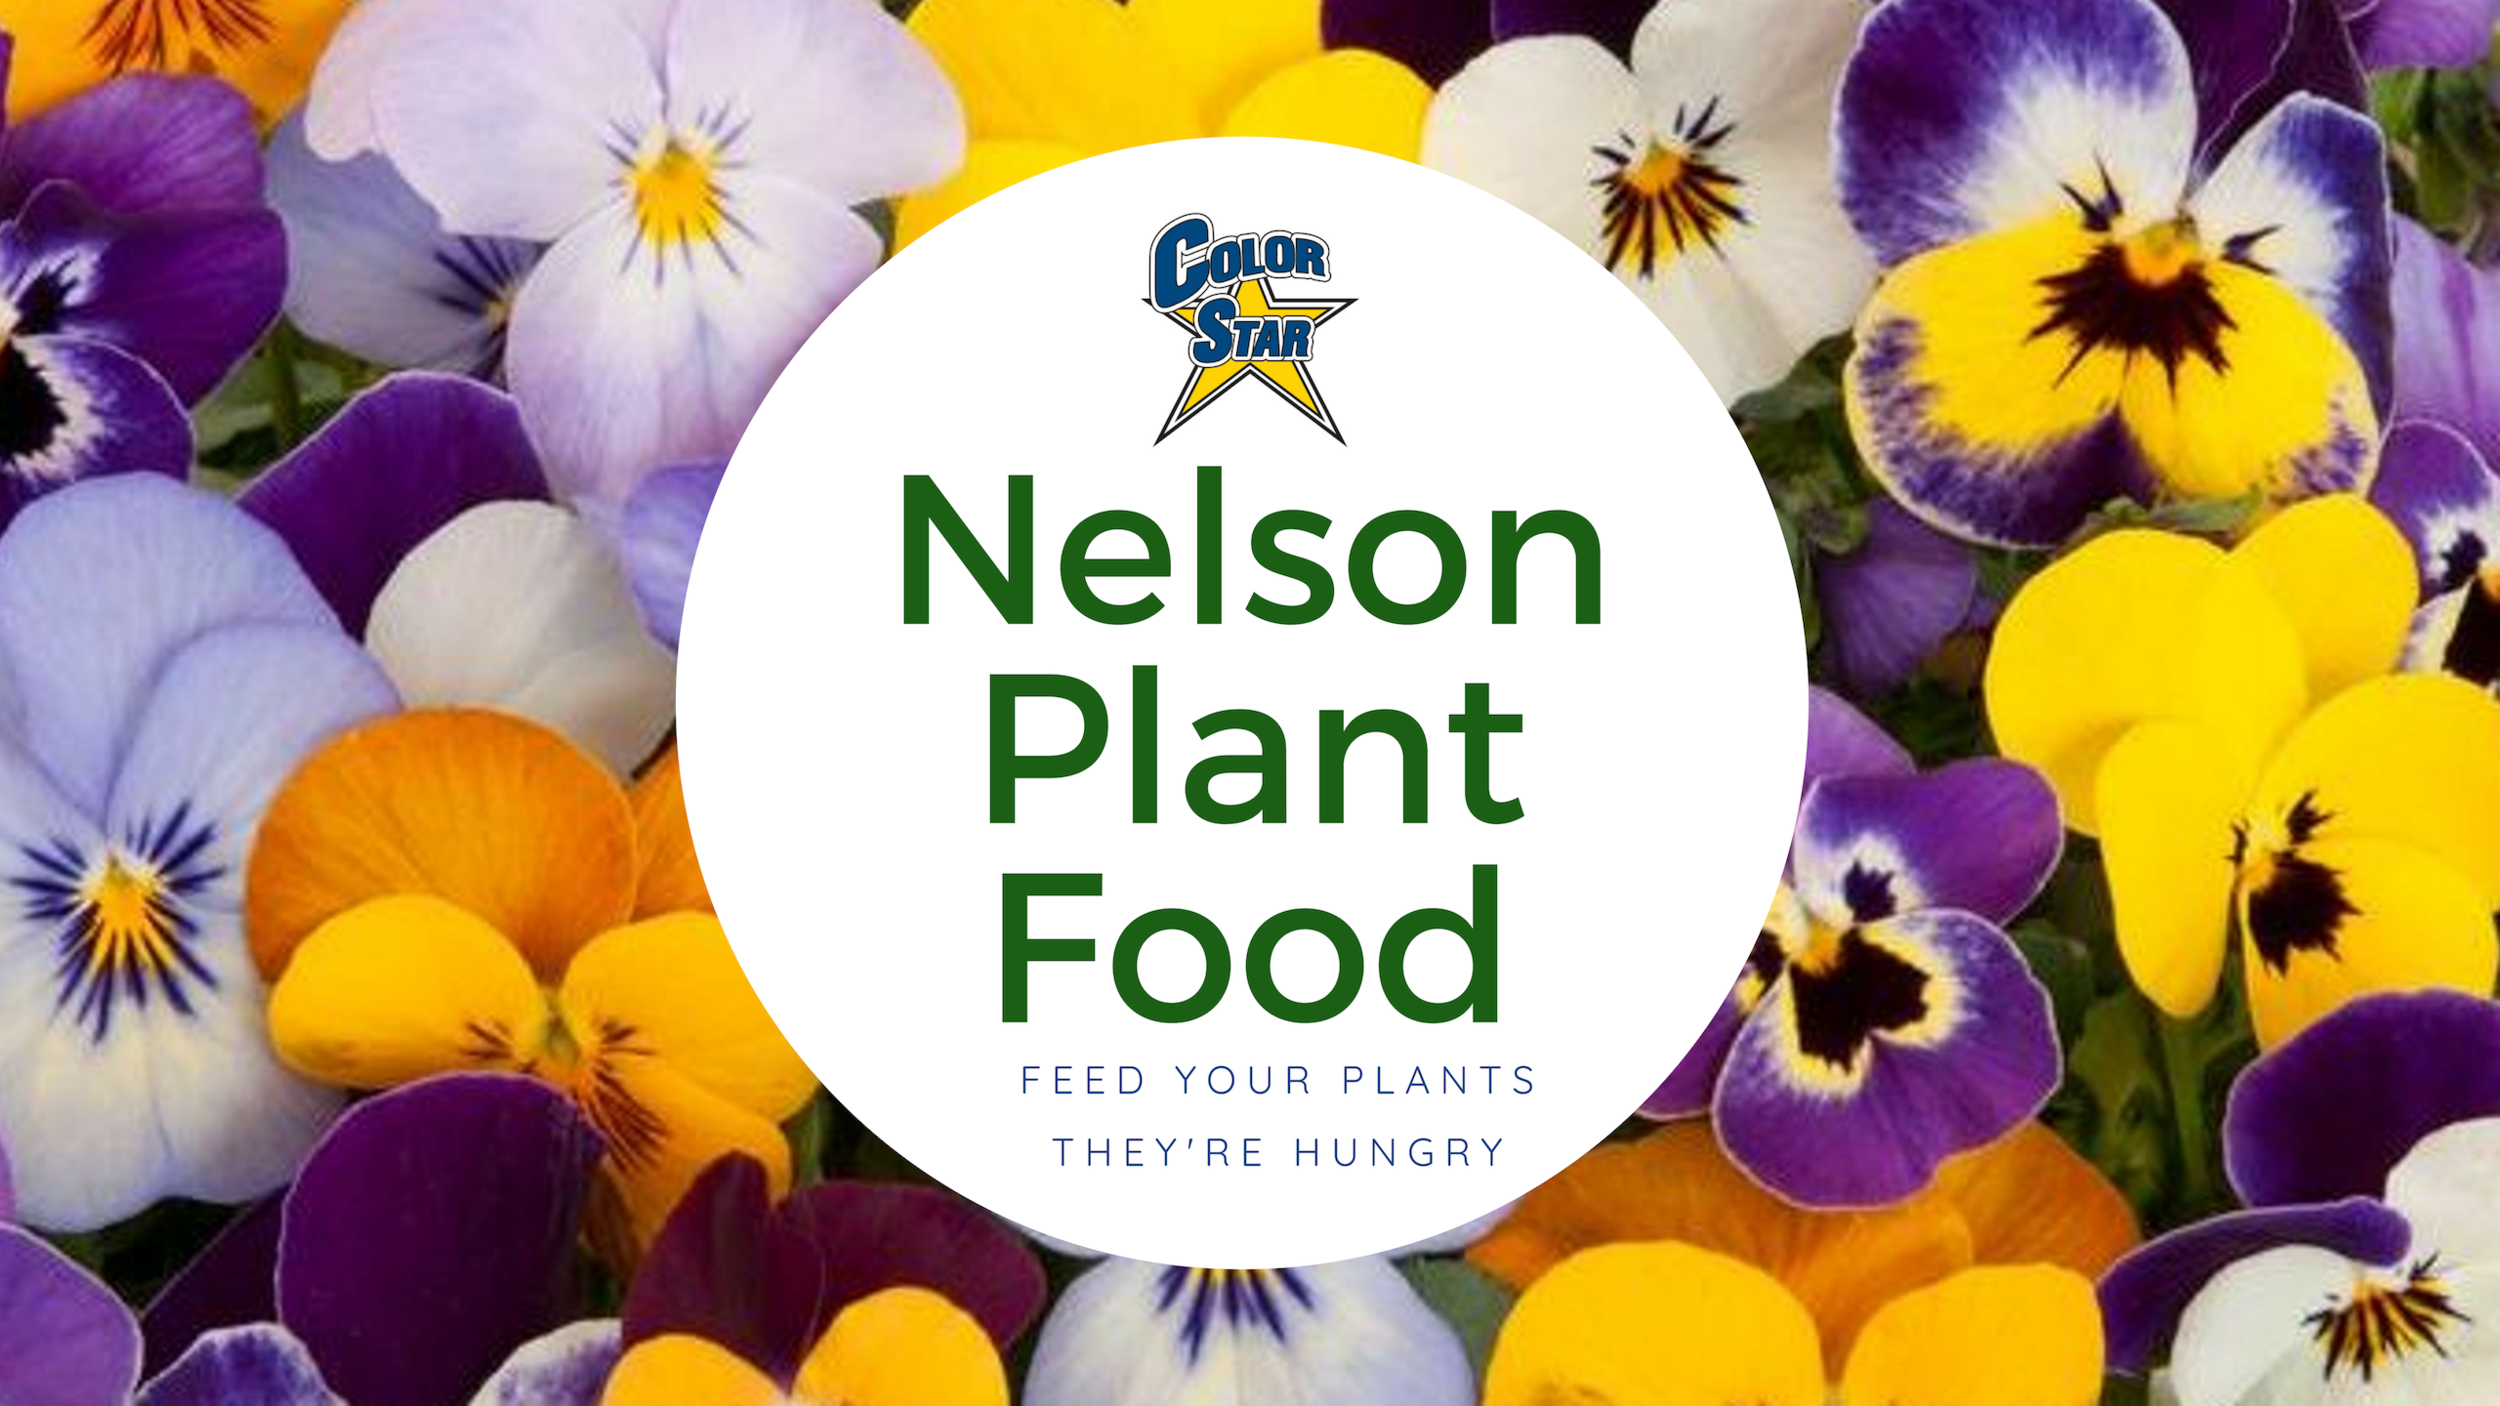 Nelson Plant Food (8).png